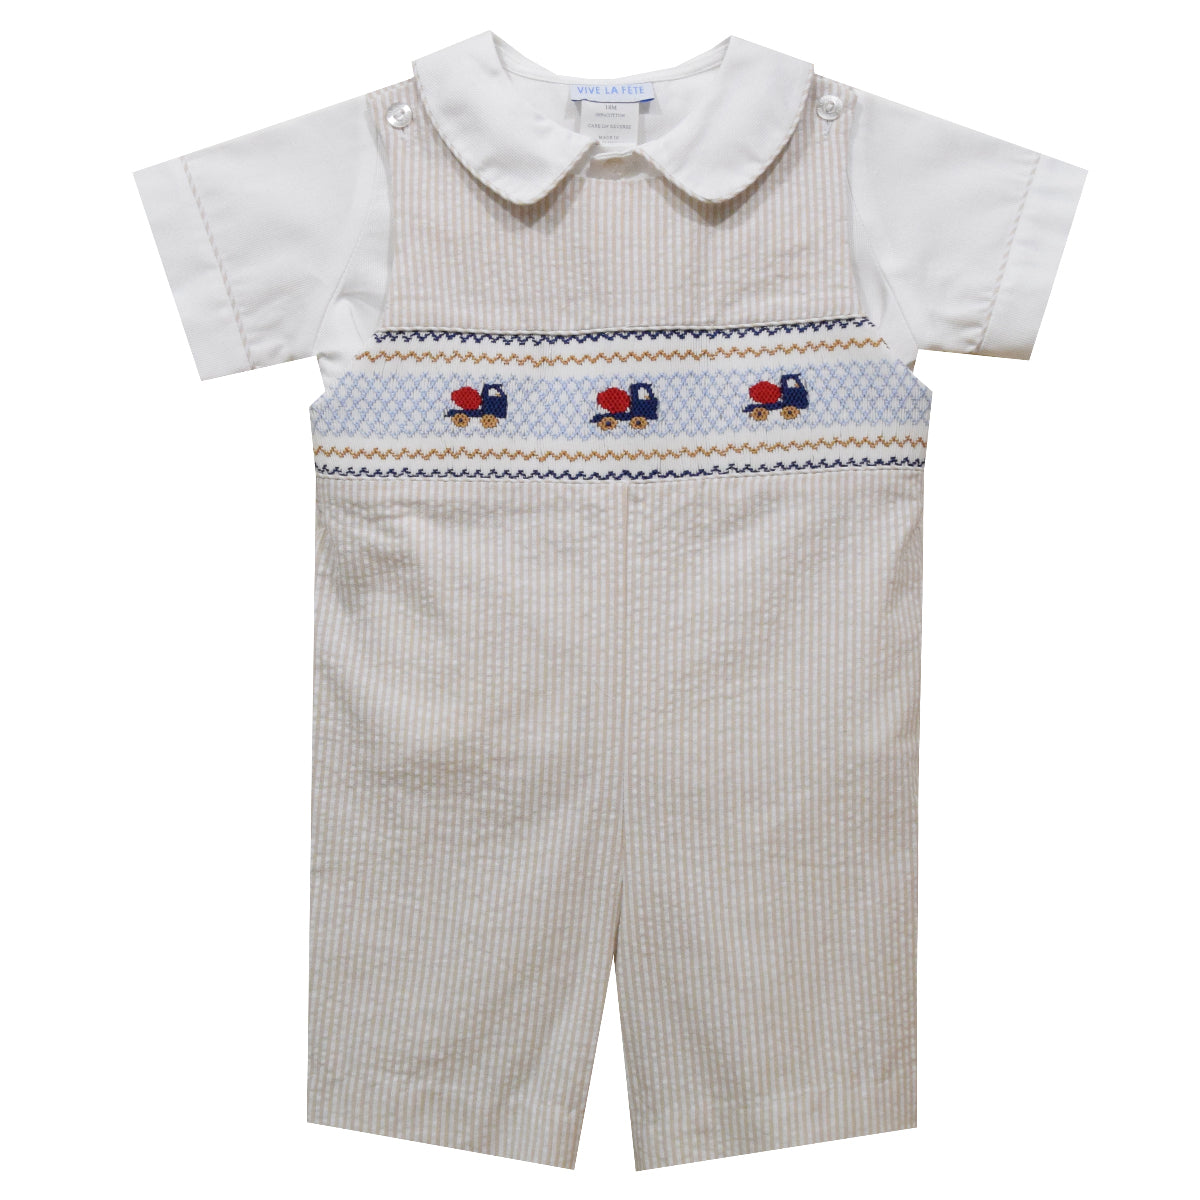 Mix Truck Geometric Smocked Beige Mini Check Shortall and White Short Sleeve Shirt - Vive La Fête - Online Apparel Store